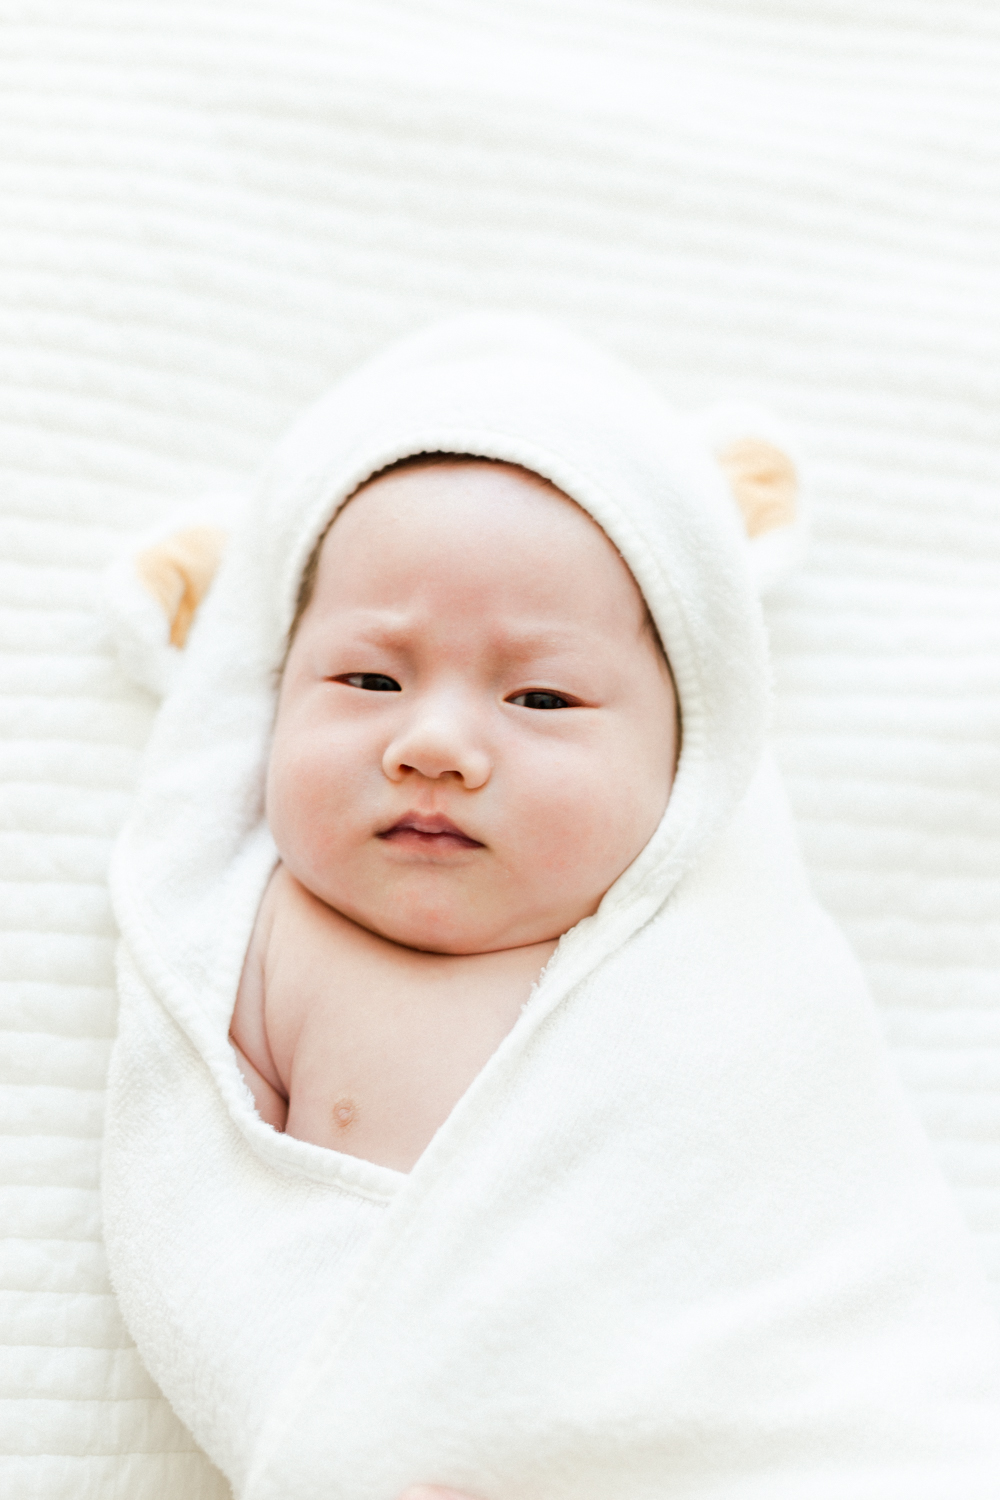 lissieloomis_photography_nyc_photographer_losangeles_baby_newbornphotography-10.JPG